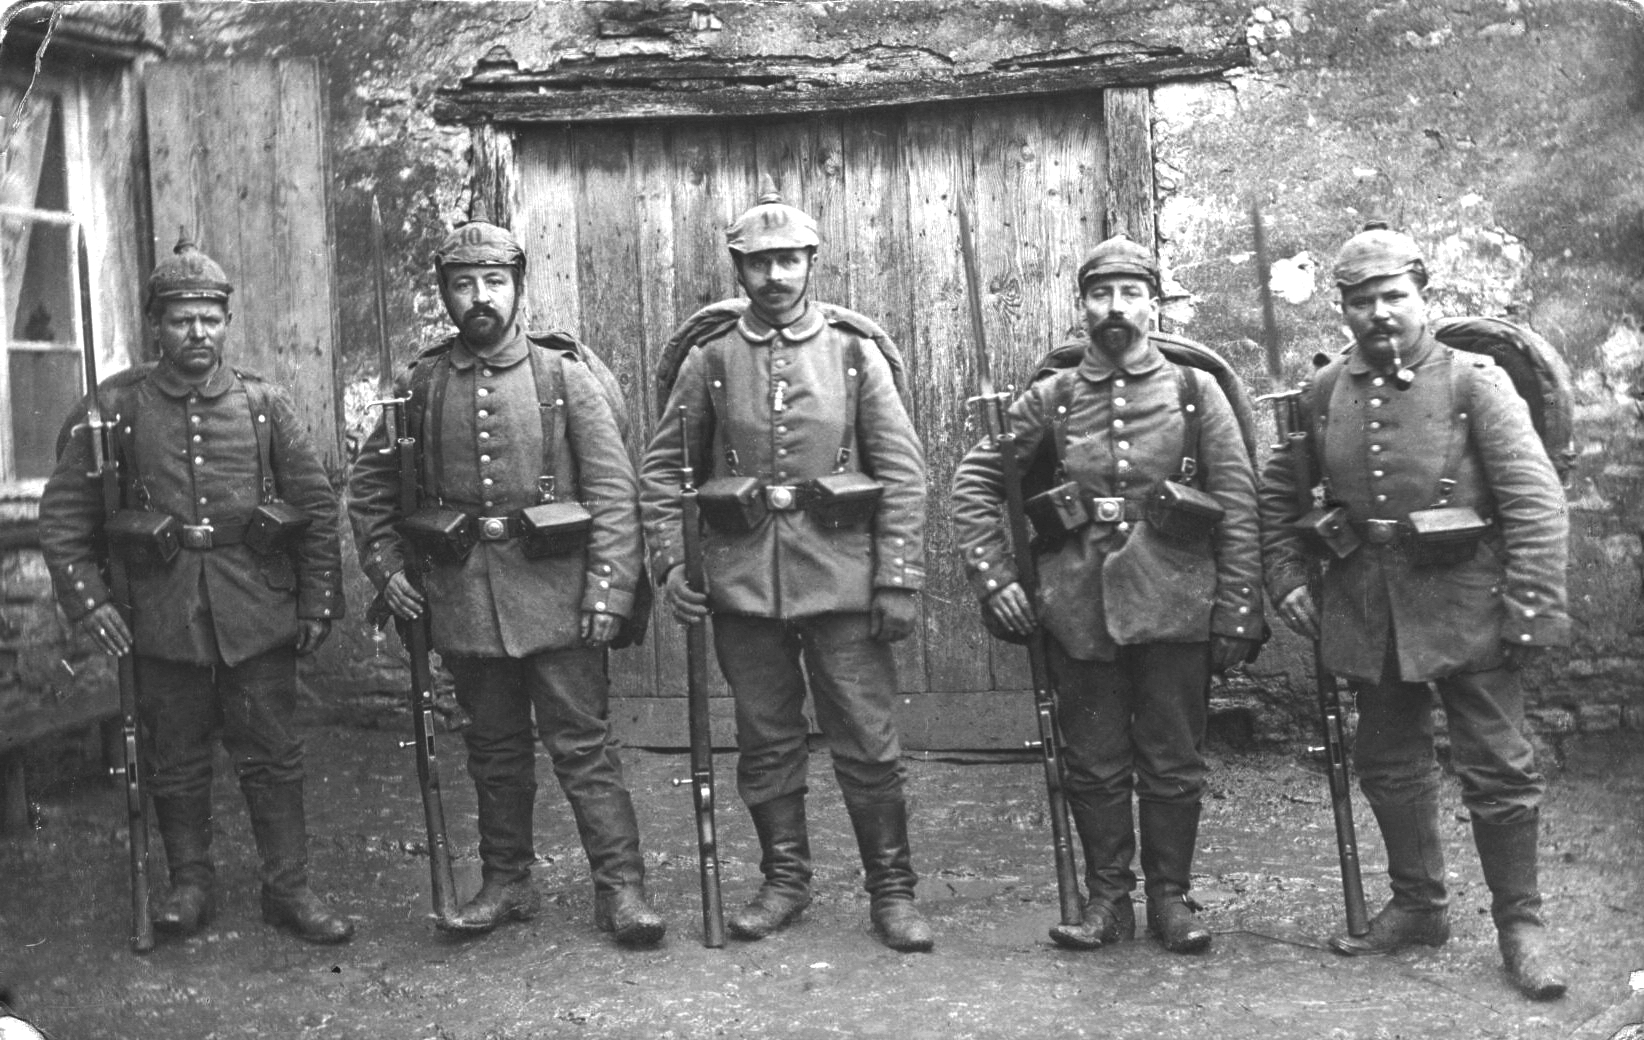 Group of German soldiers with Mausers with M71 bayonets